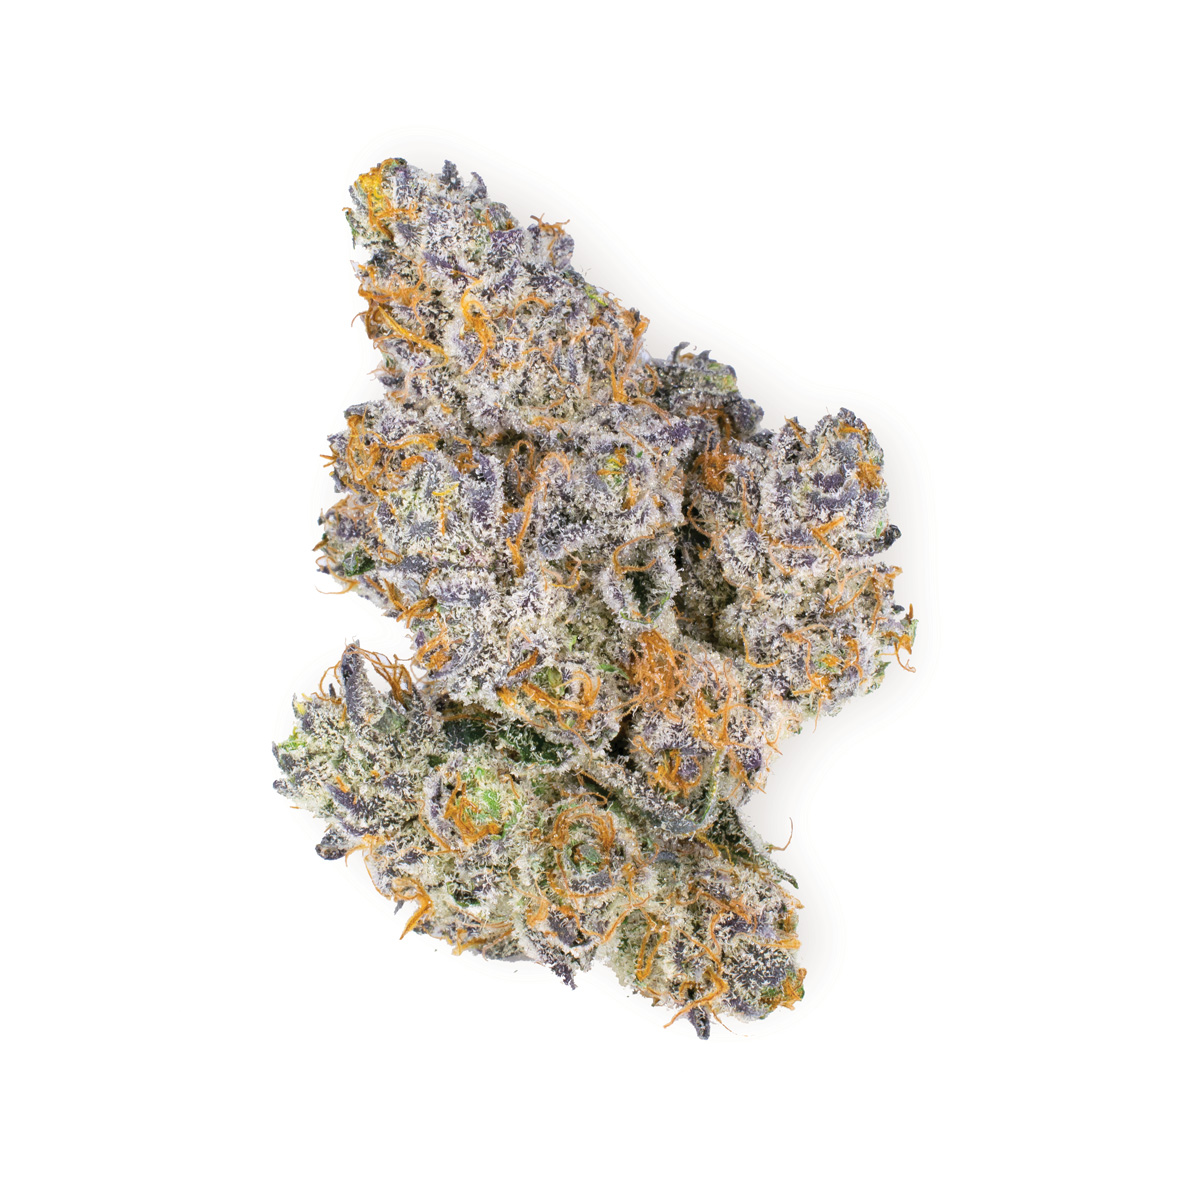 Copy of our strains — Ember valley